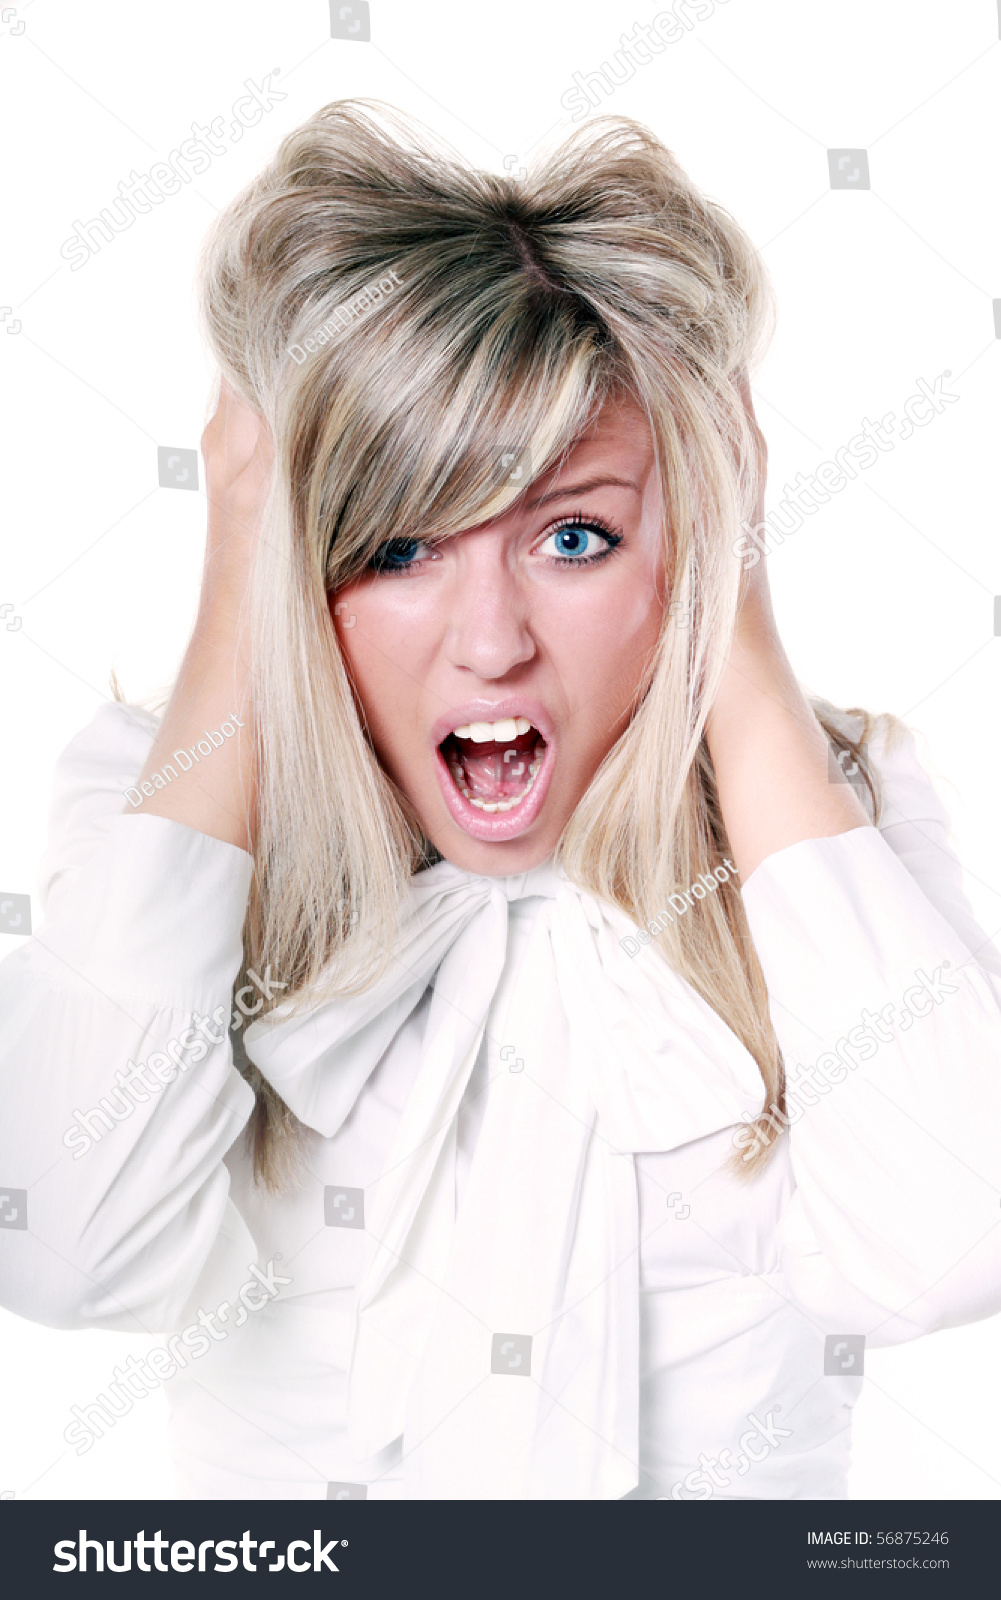 Grimace face clip art stock photo woman pulls a face in upset - Very Frustrated And Angry Mad Woman Hands In Her Hair Pulling Isolated On White Background